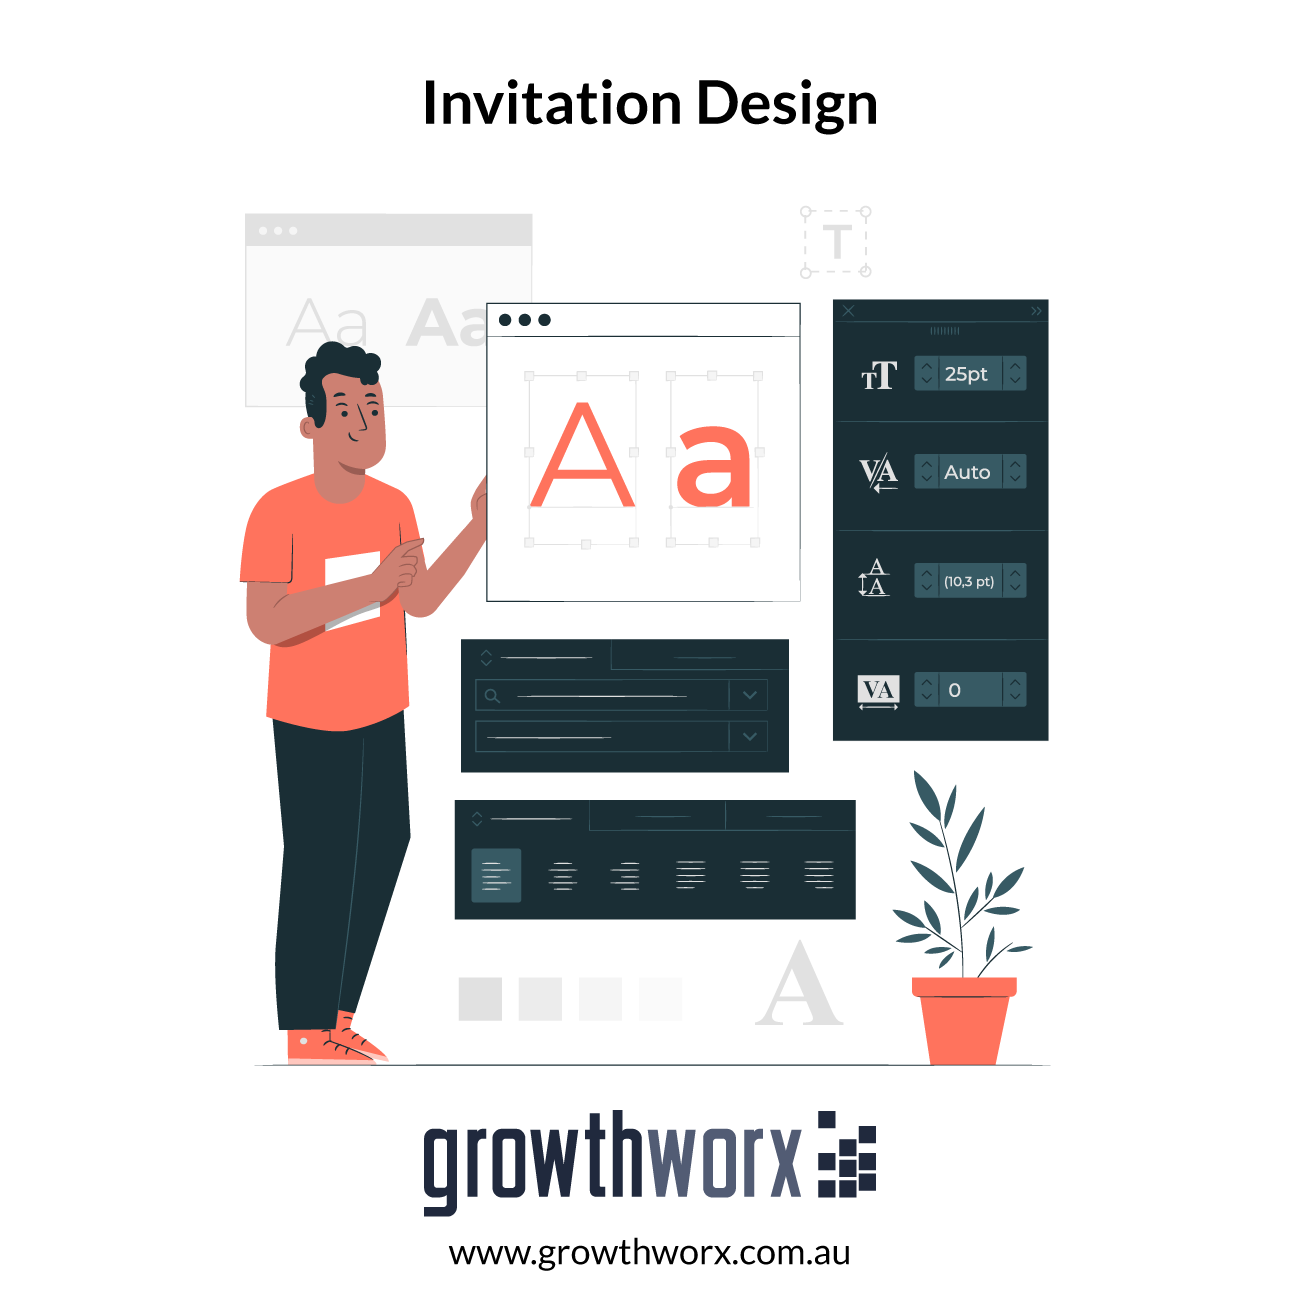 We will design invitations for your party or event 1